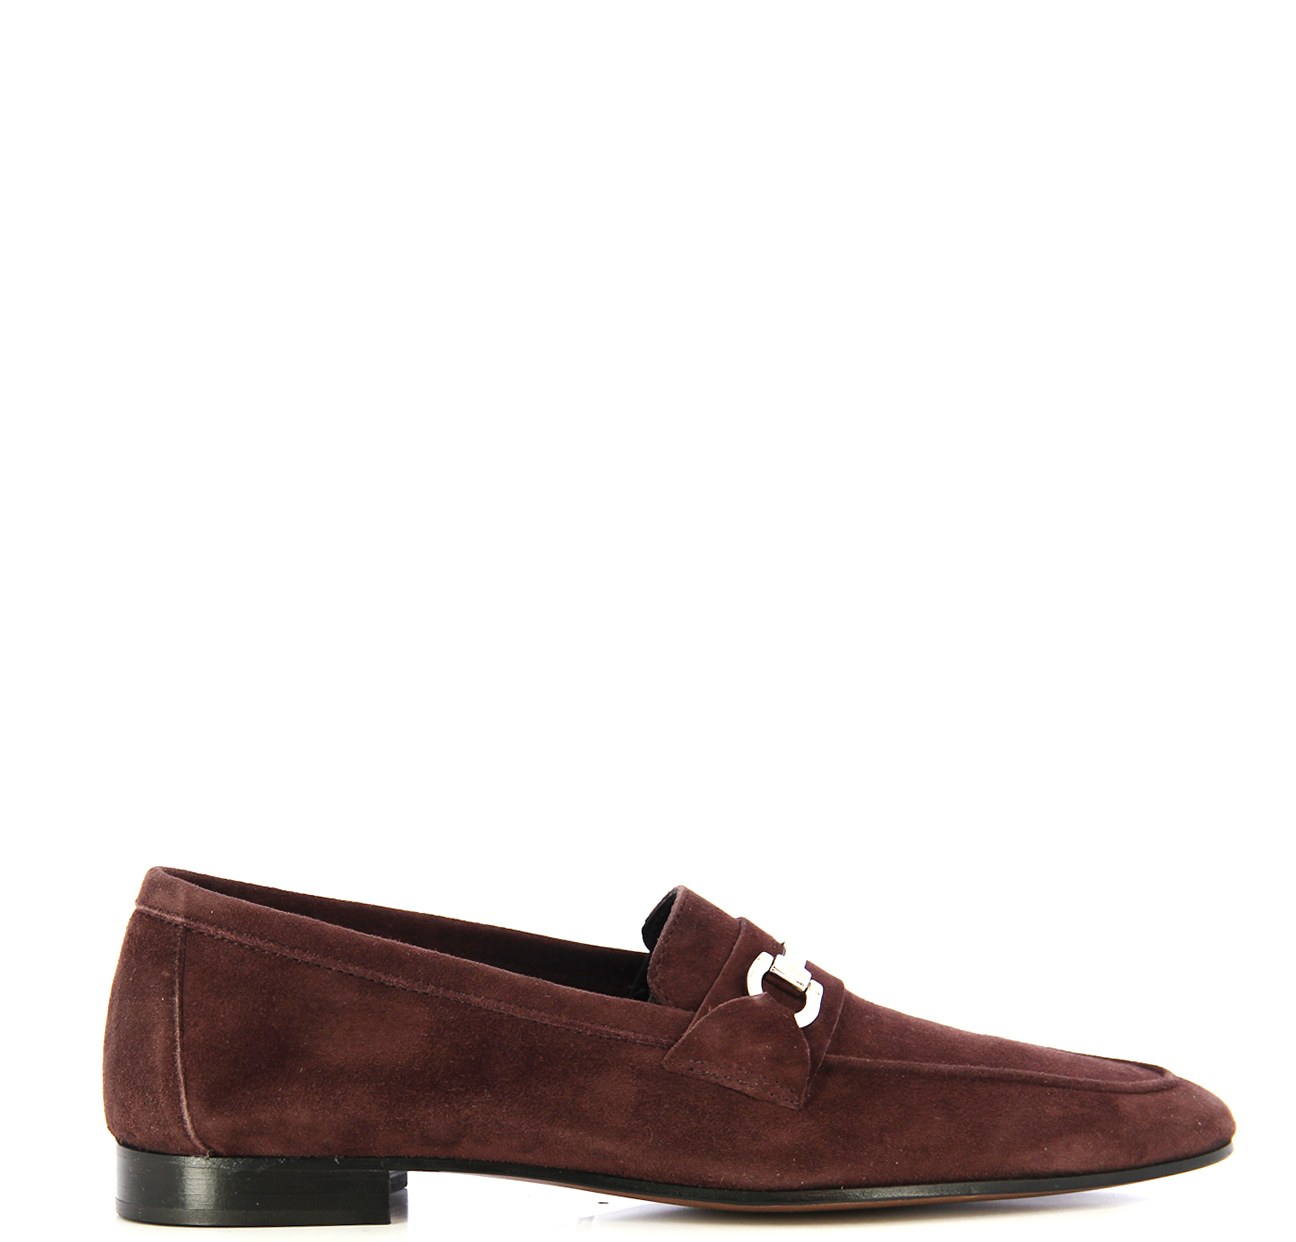 GS190554 - Brown